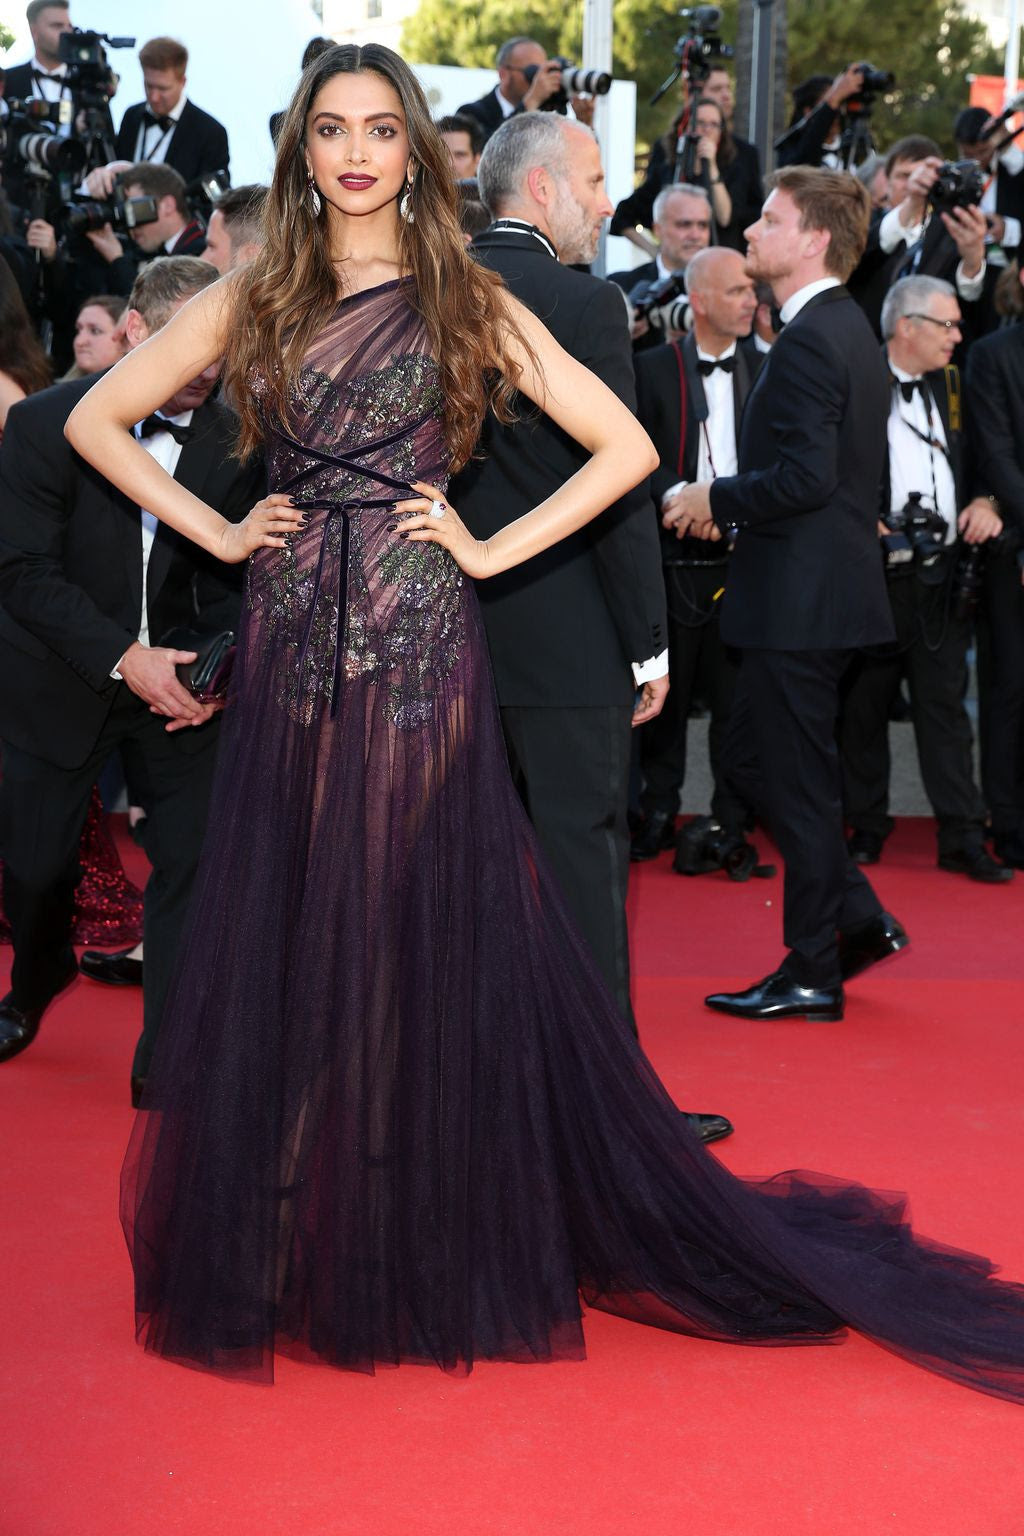 You saw red carpet dresses online shopping india scam